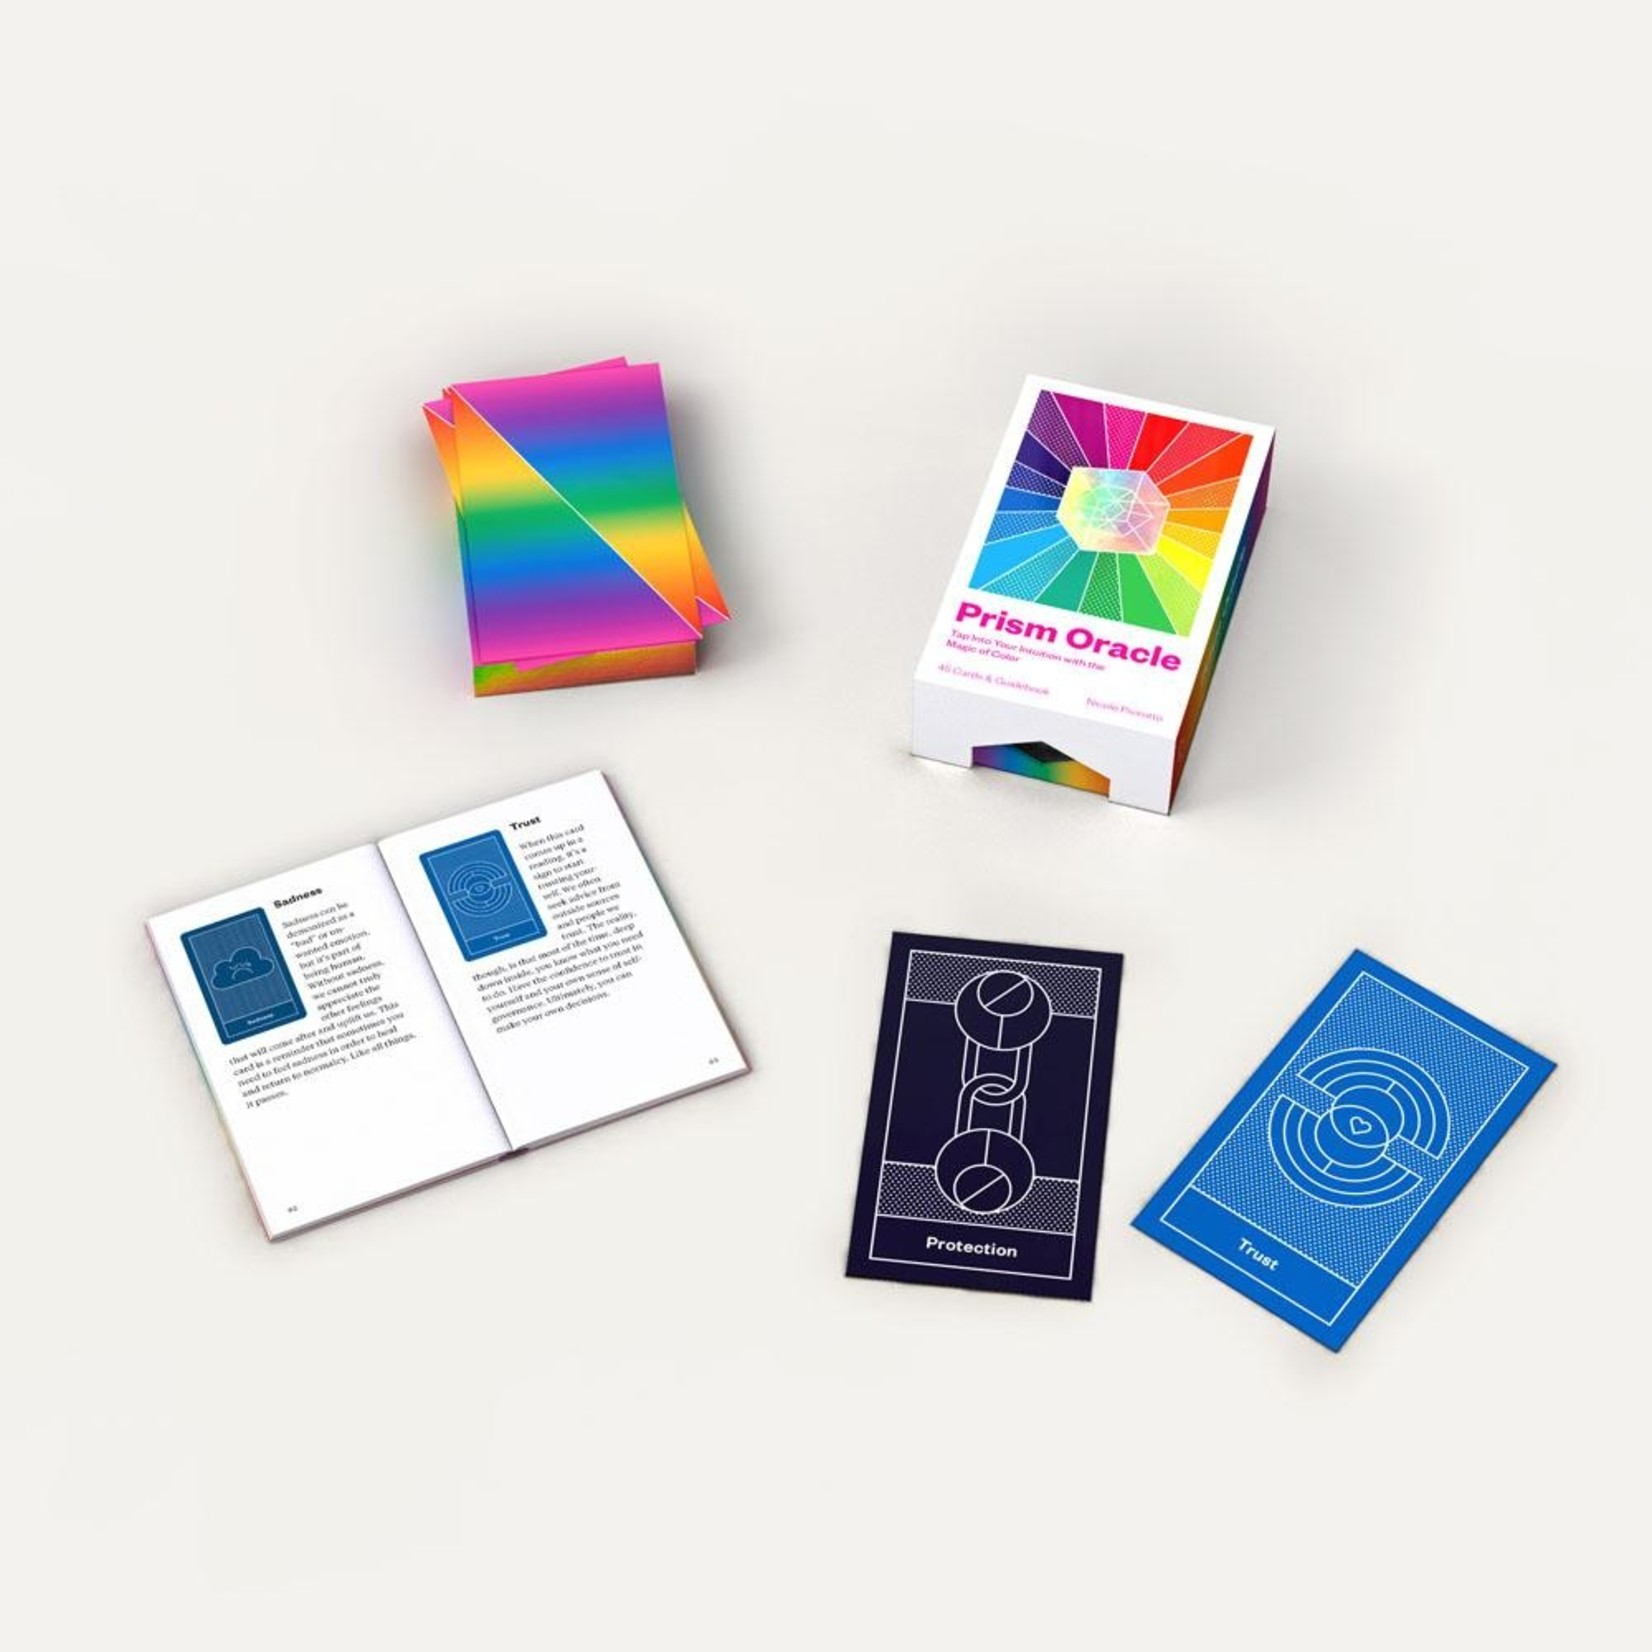 Prism Oracle Tap into Your Intuition with the Magic of Color